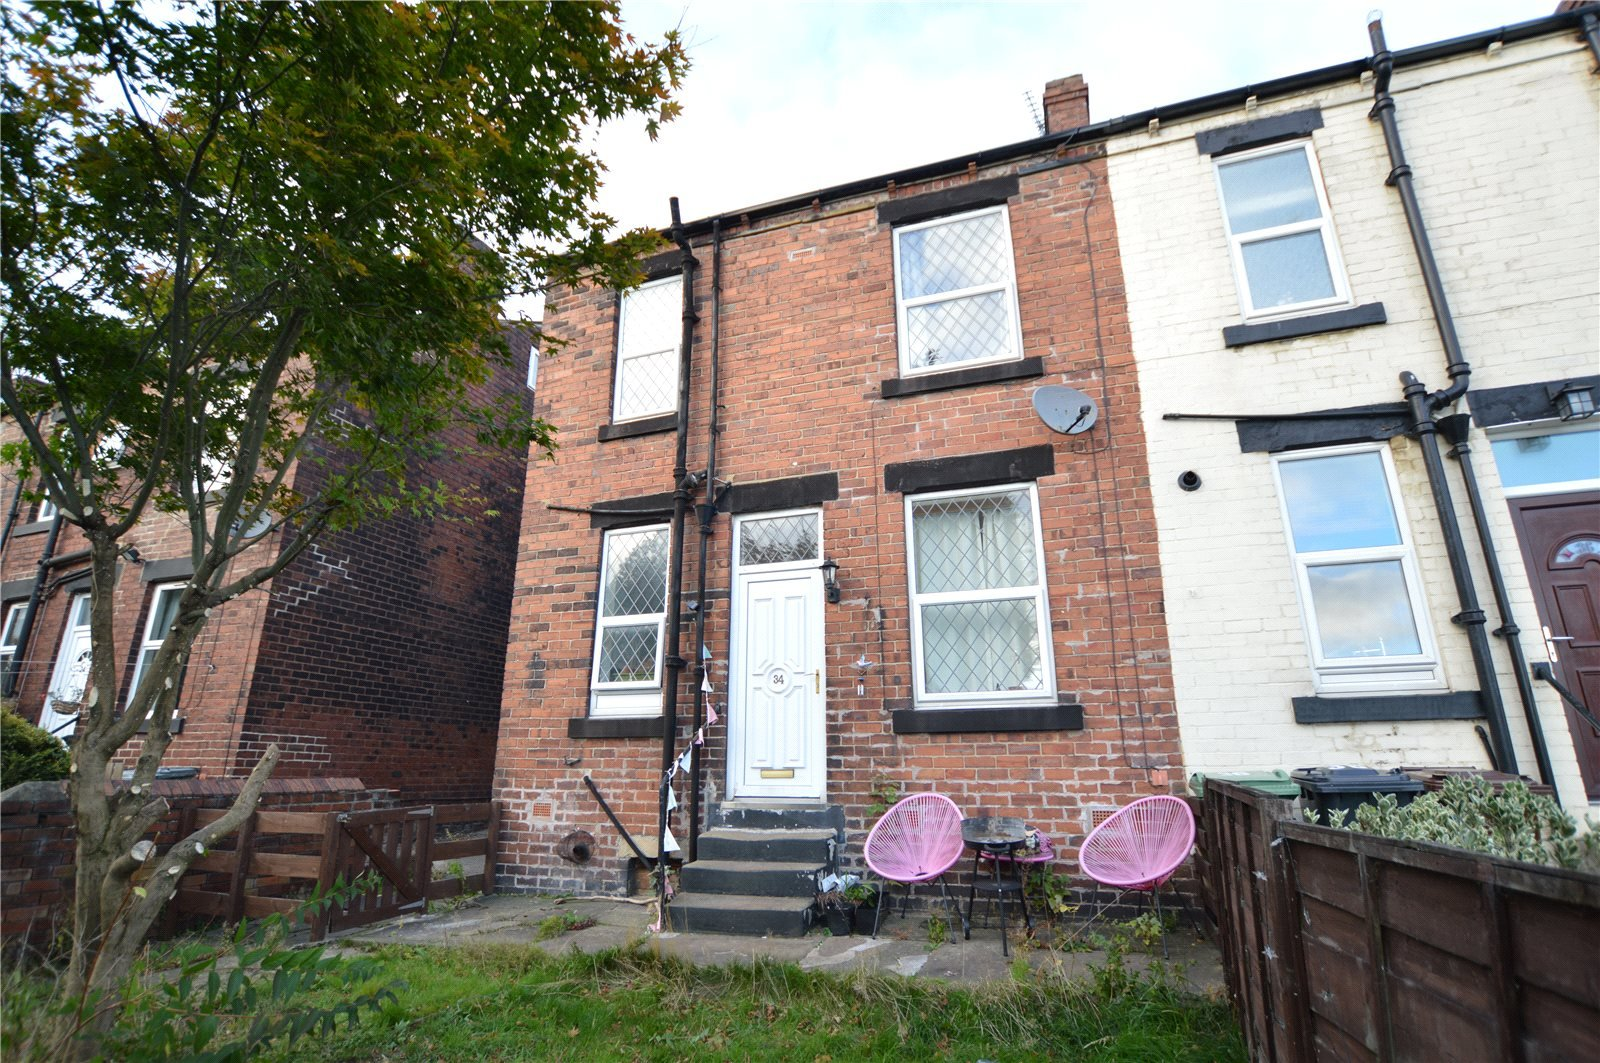 property for sale in Morley, exterior red brick semi detached home